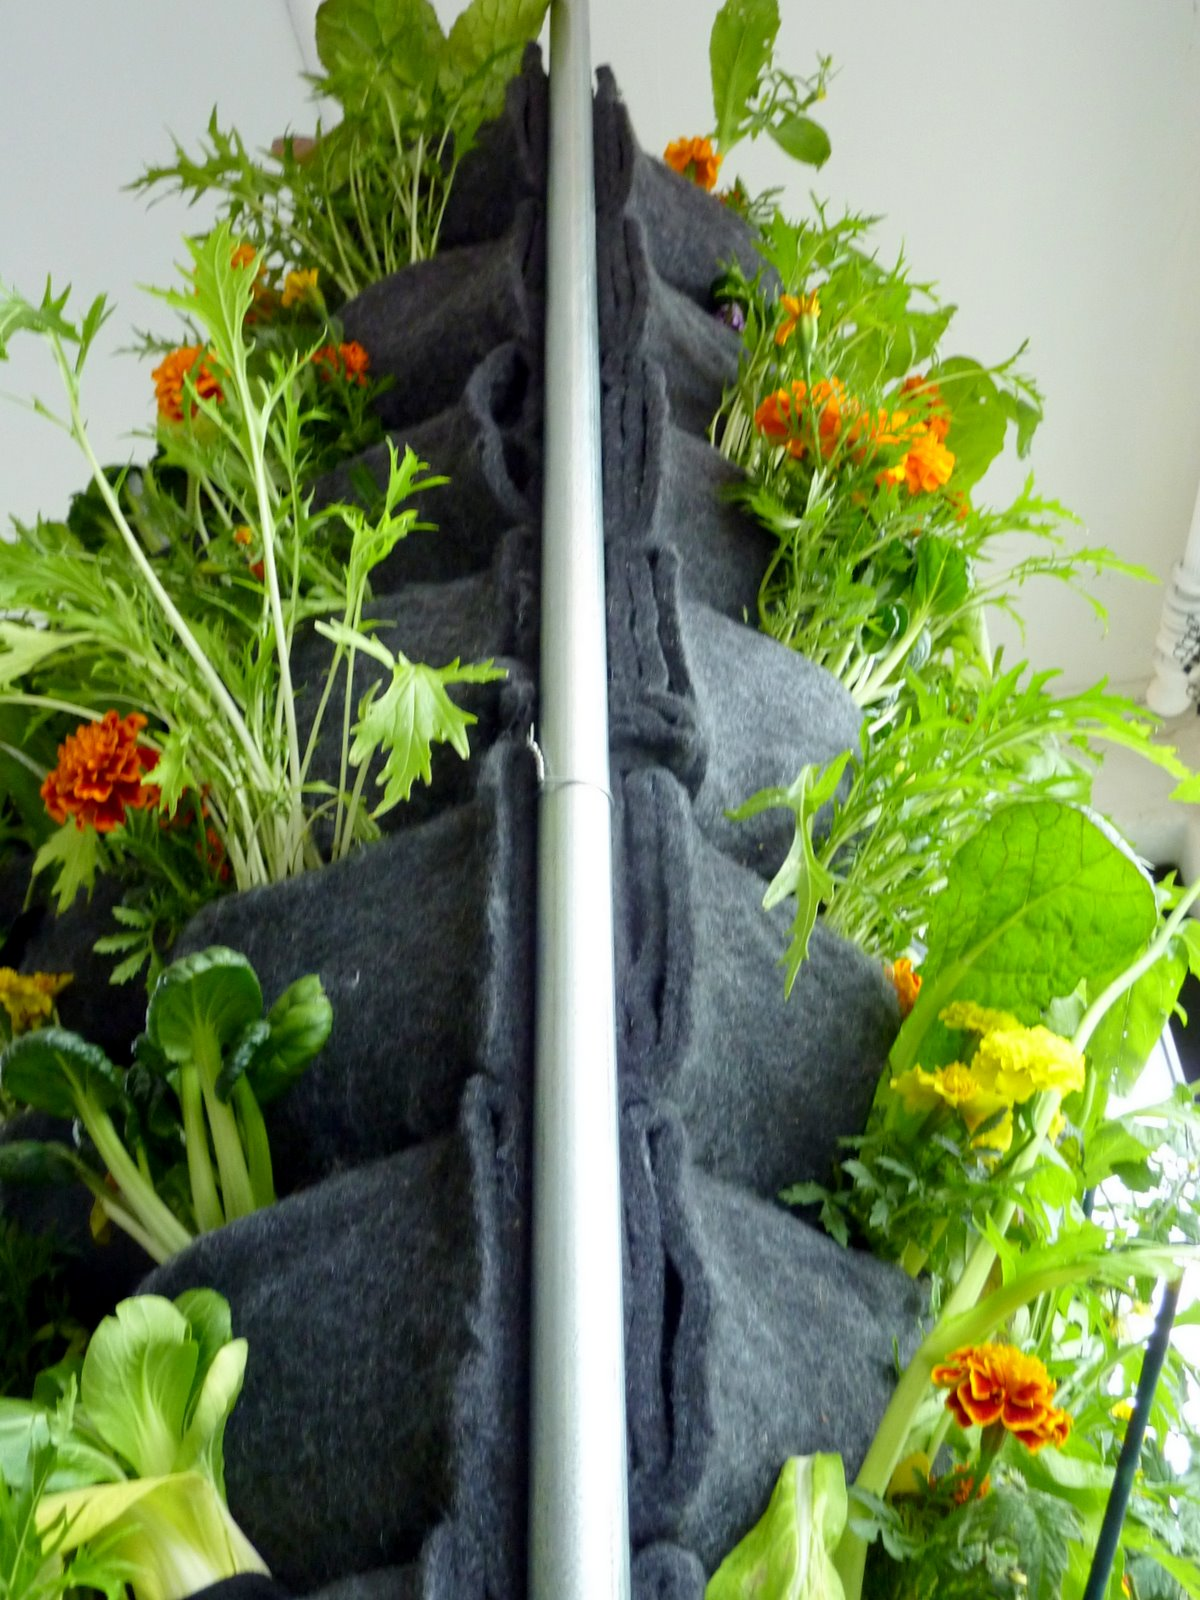 Vertikal Gardinen Aquaponic Vertical Vegetable Garden Florafelt Vertical